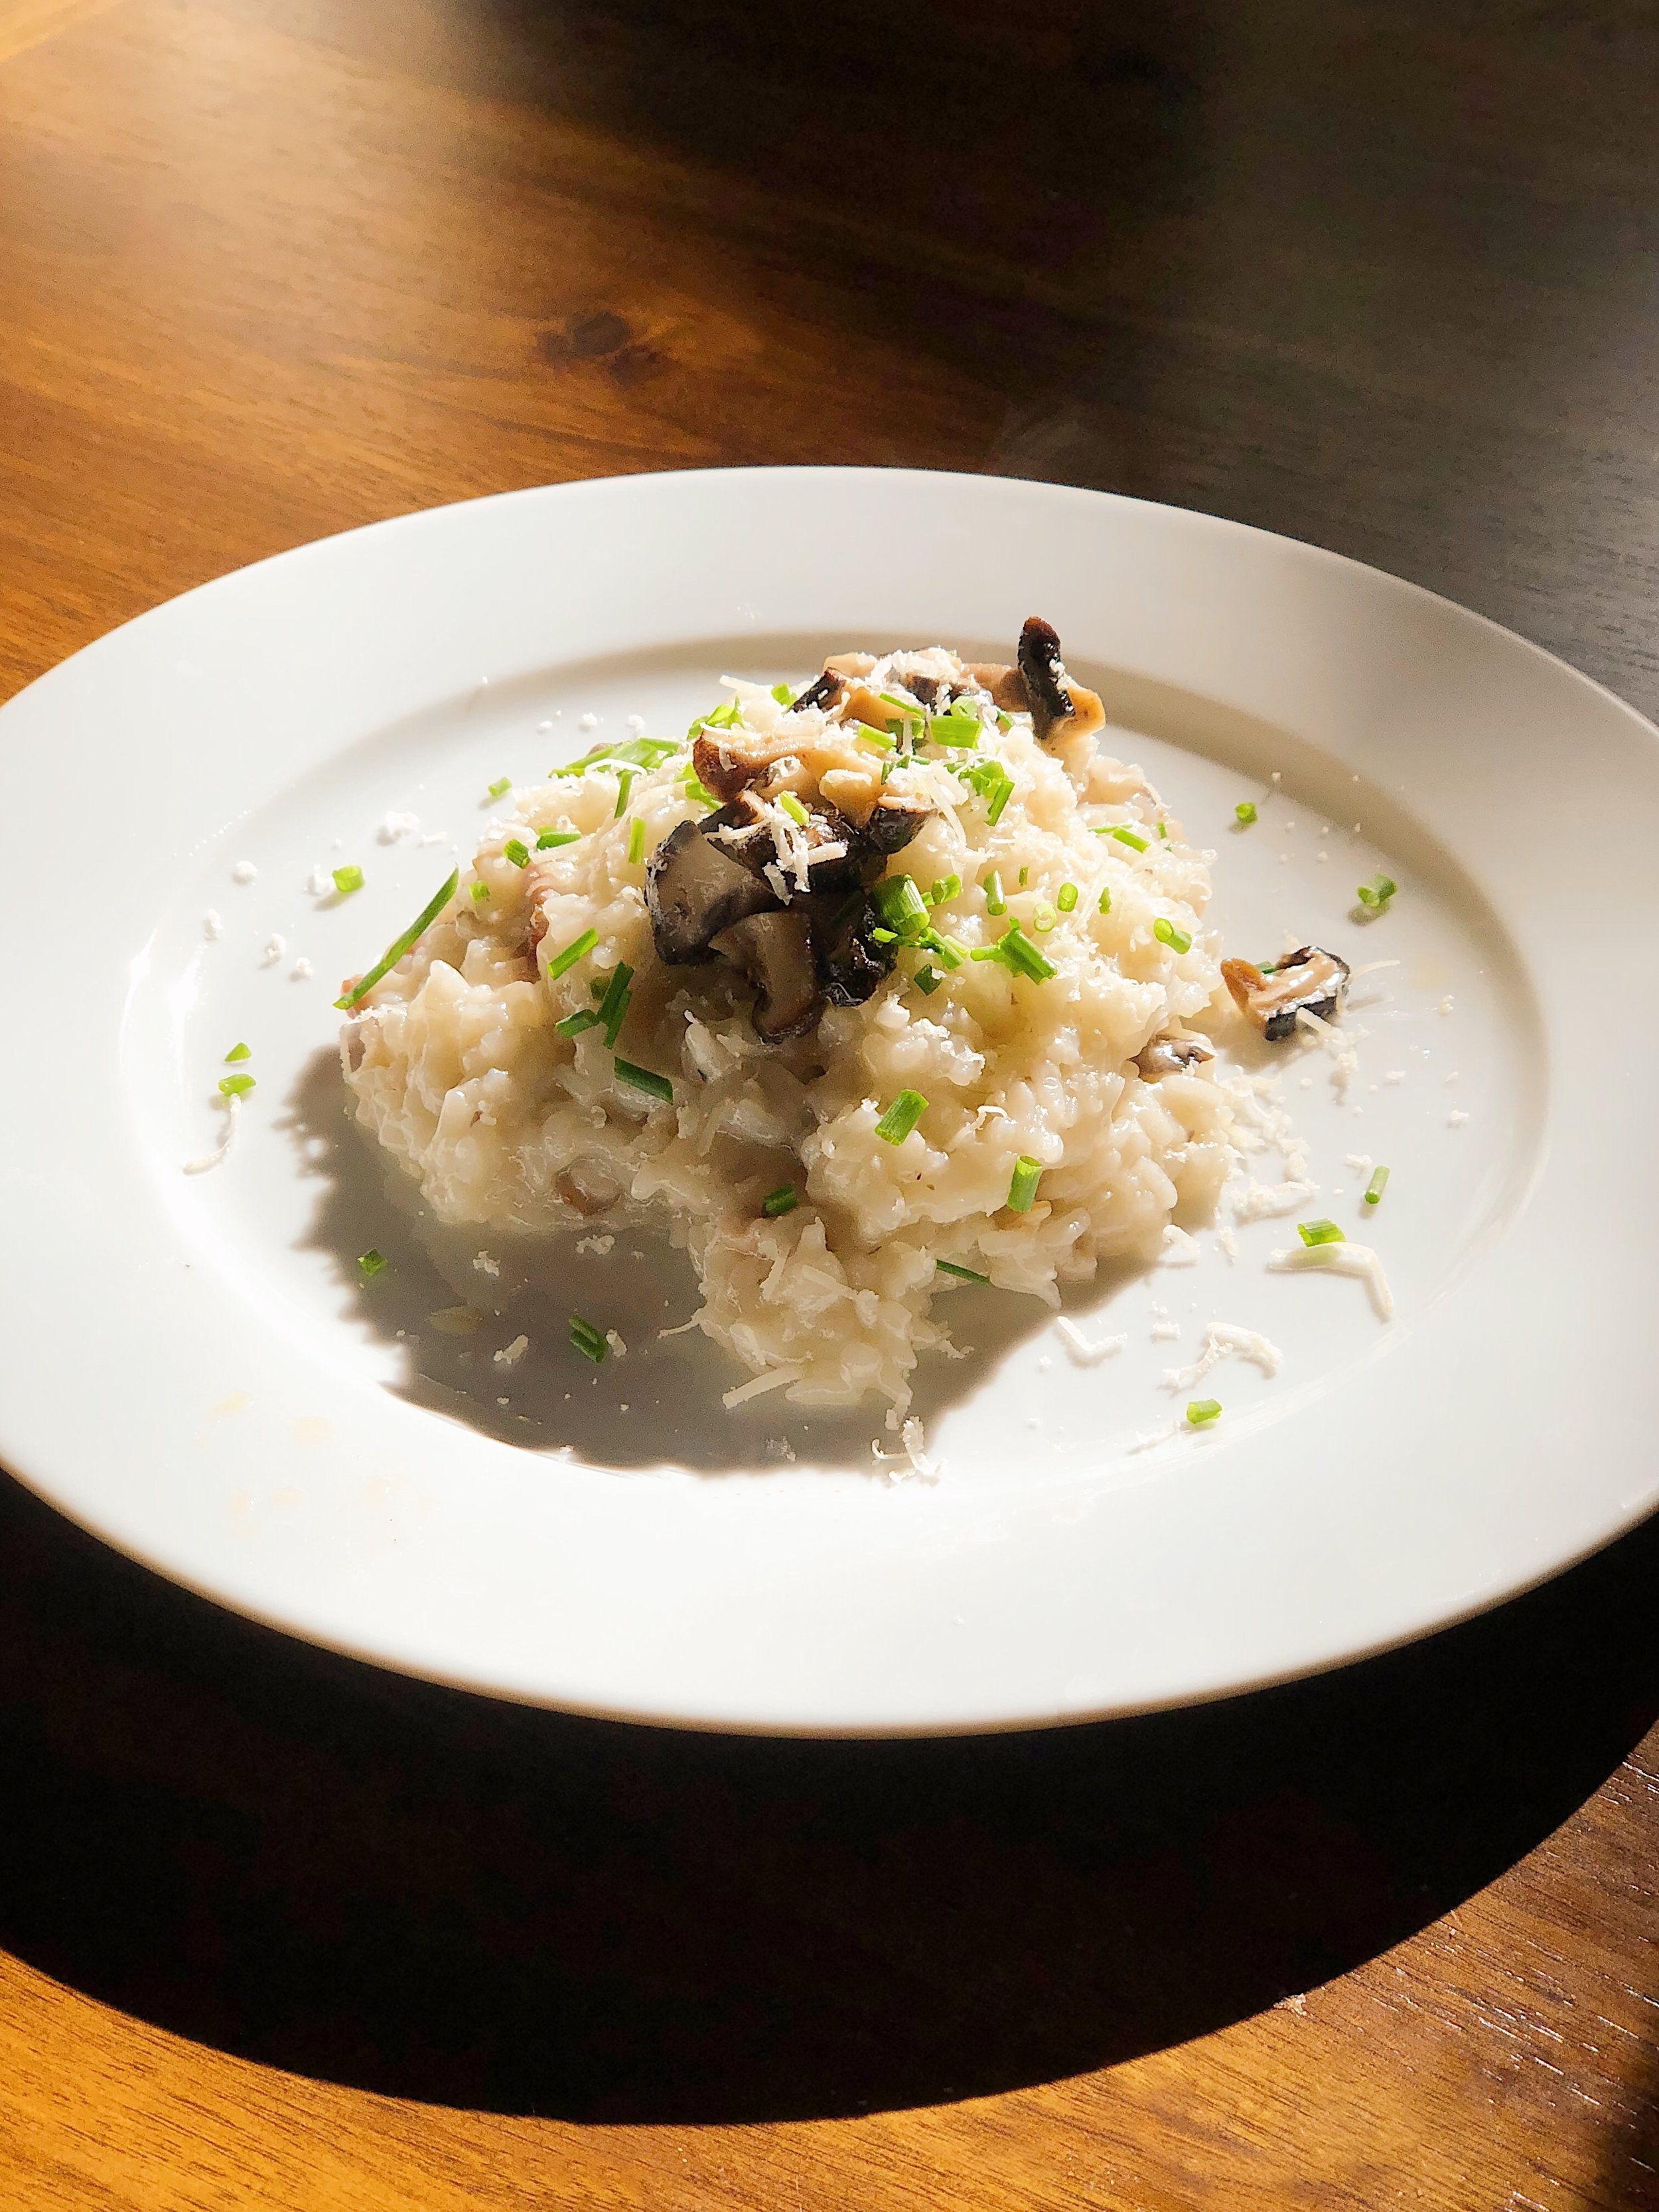 Parmesan & Butter Risotto with Shiitake Mushrooms